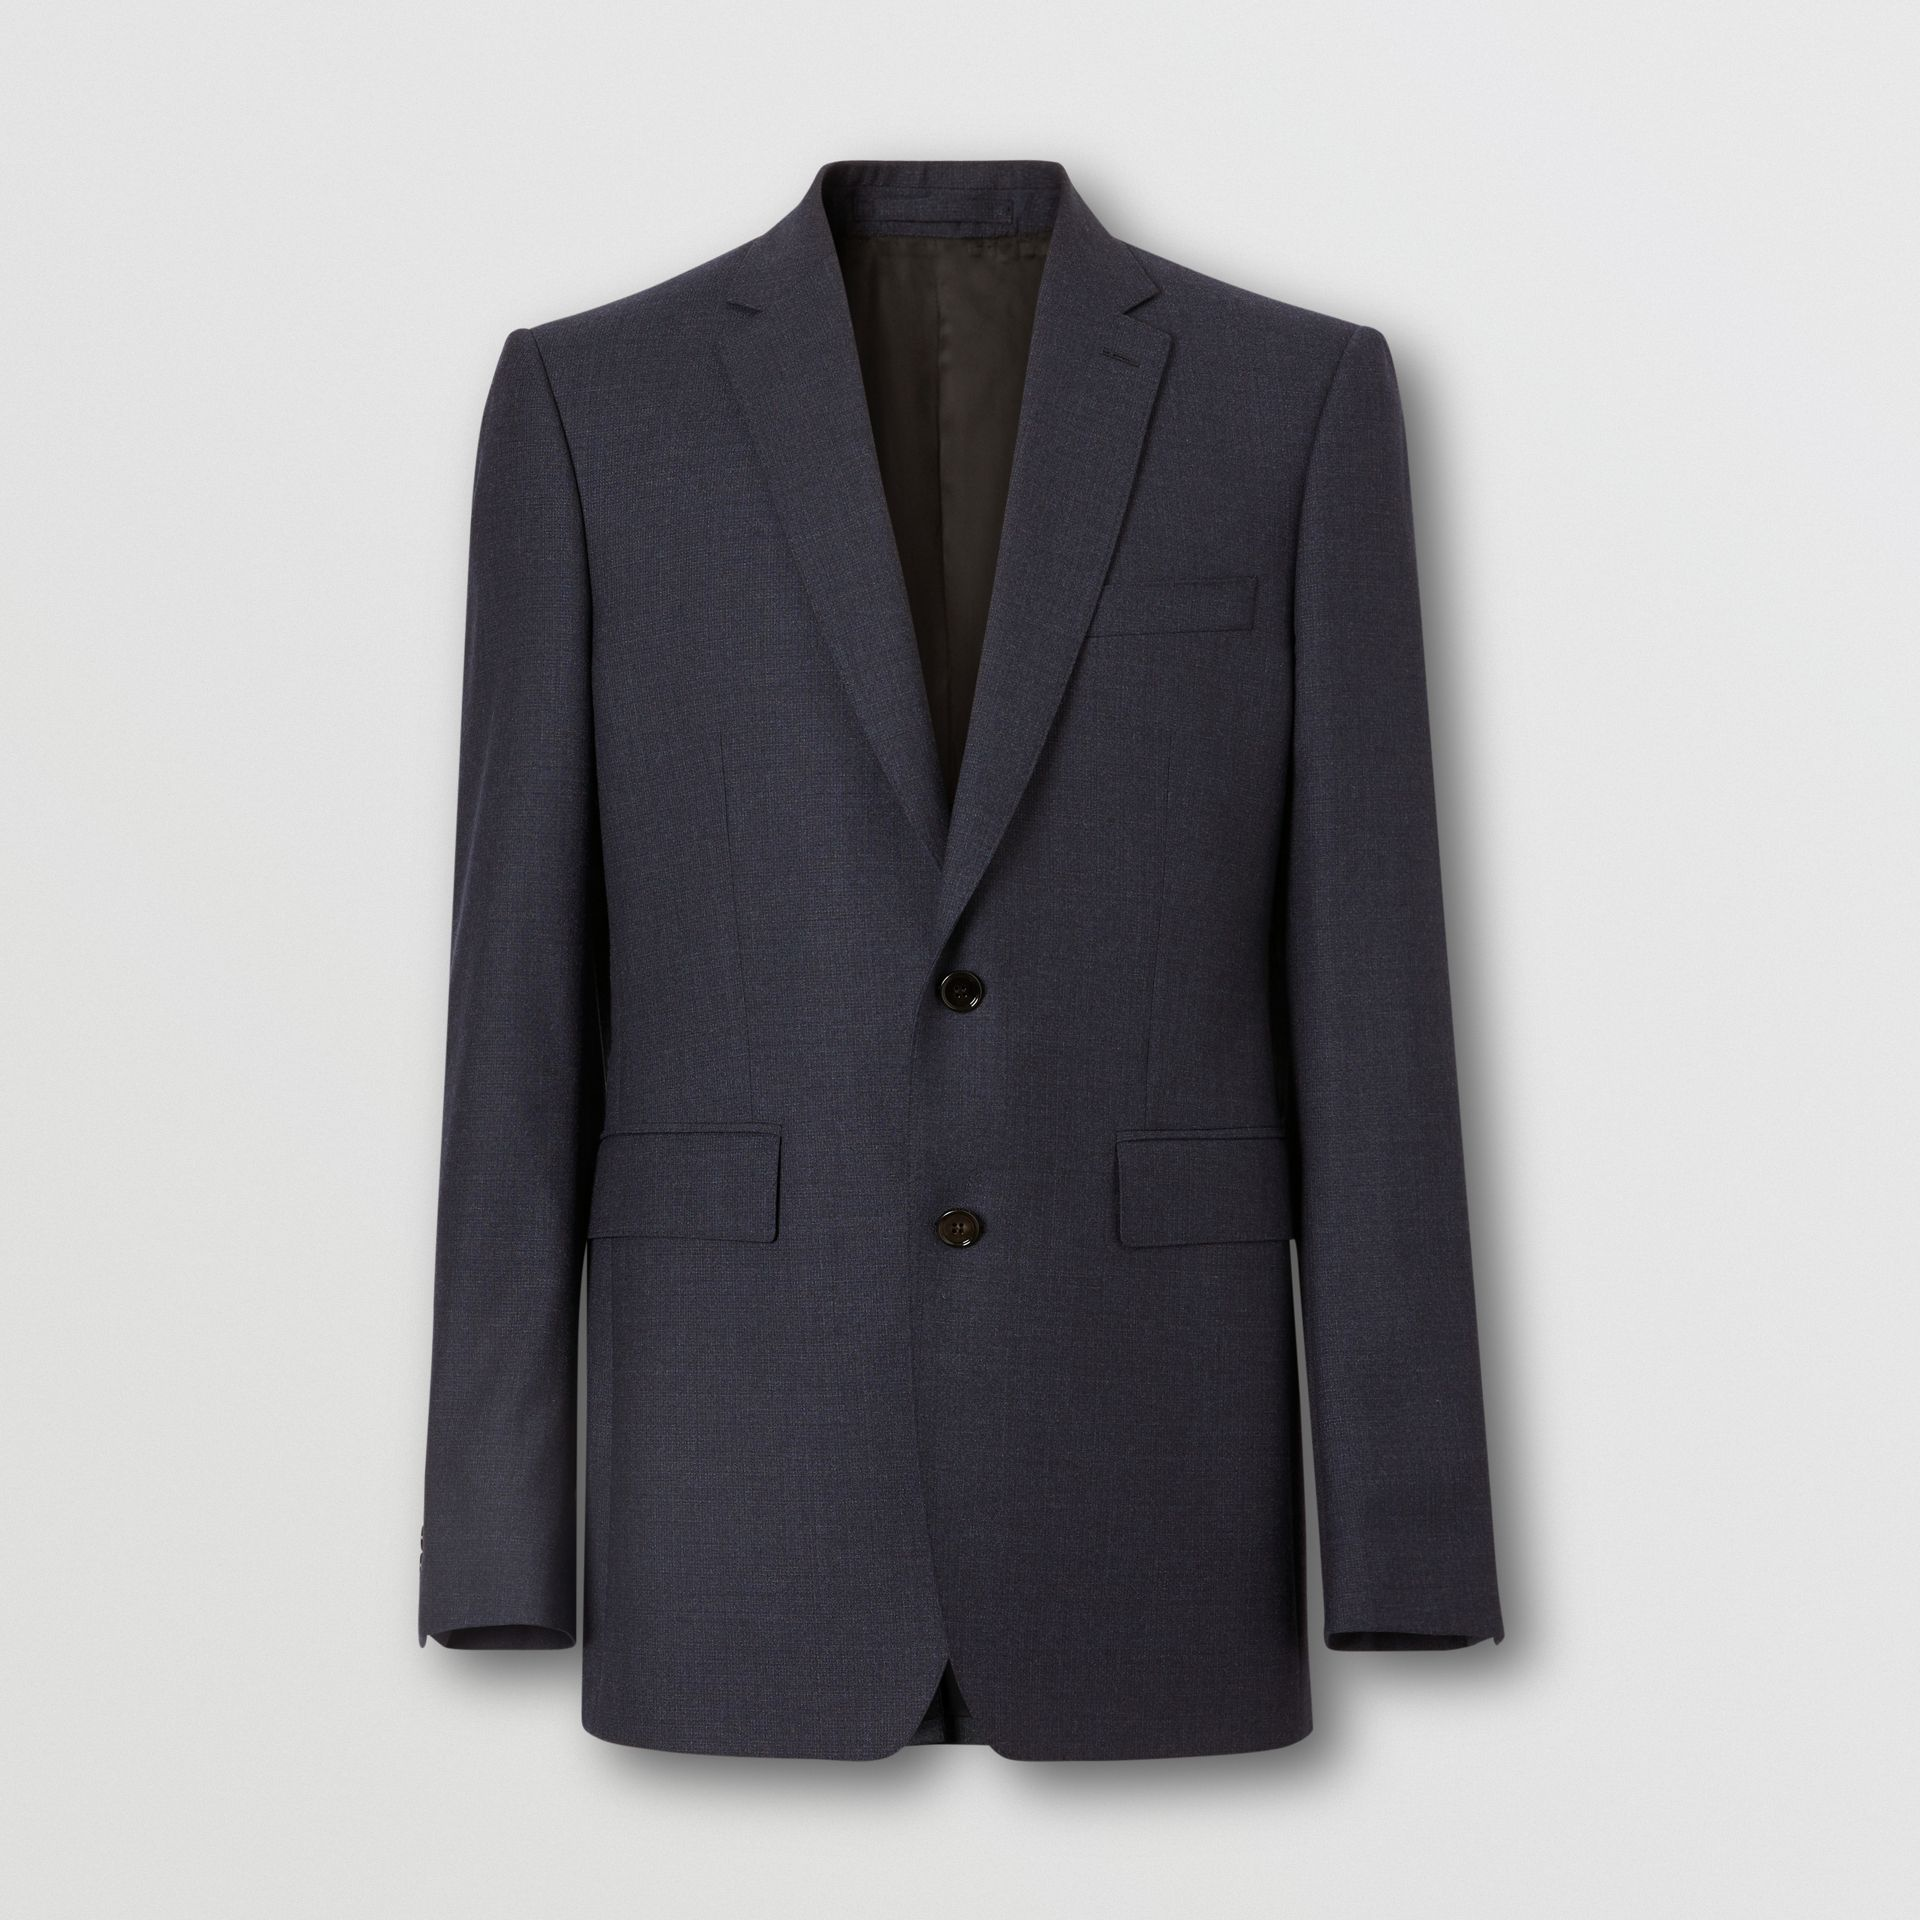 Classic Fit Wool Three-piece Suit in Navy - Men | Burberry - gallery image 3